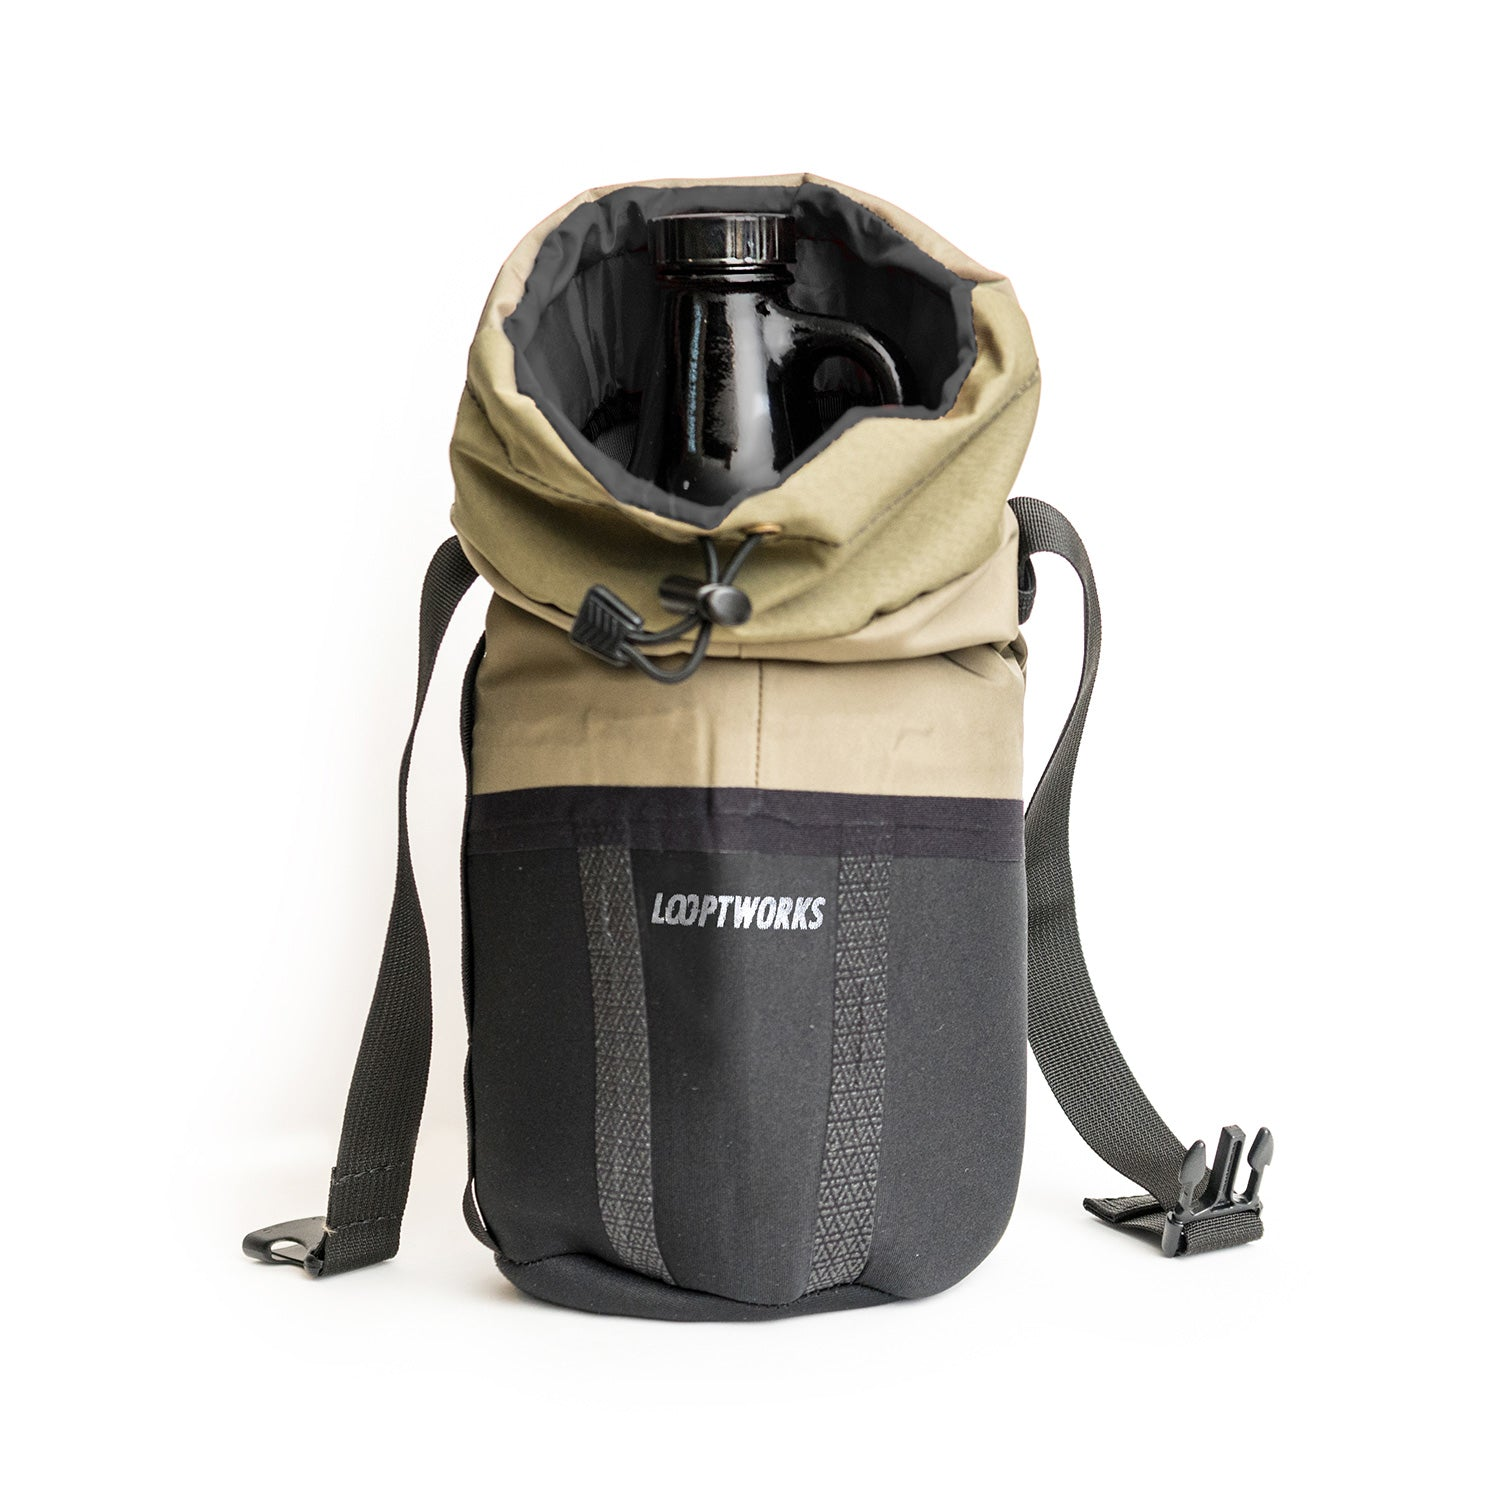 Looptworks neoprene growler carrier